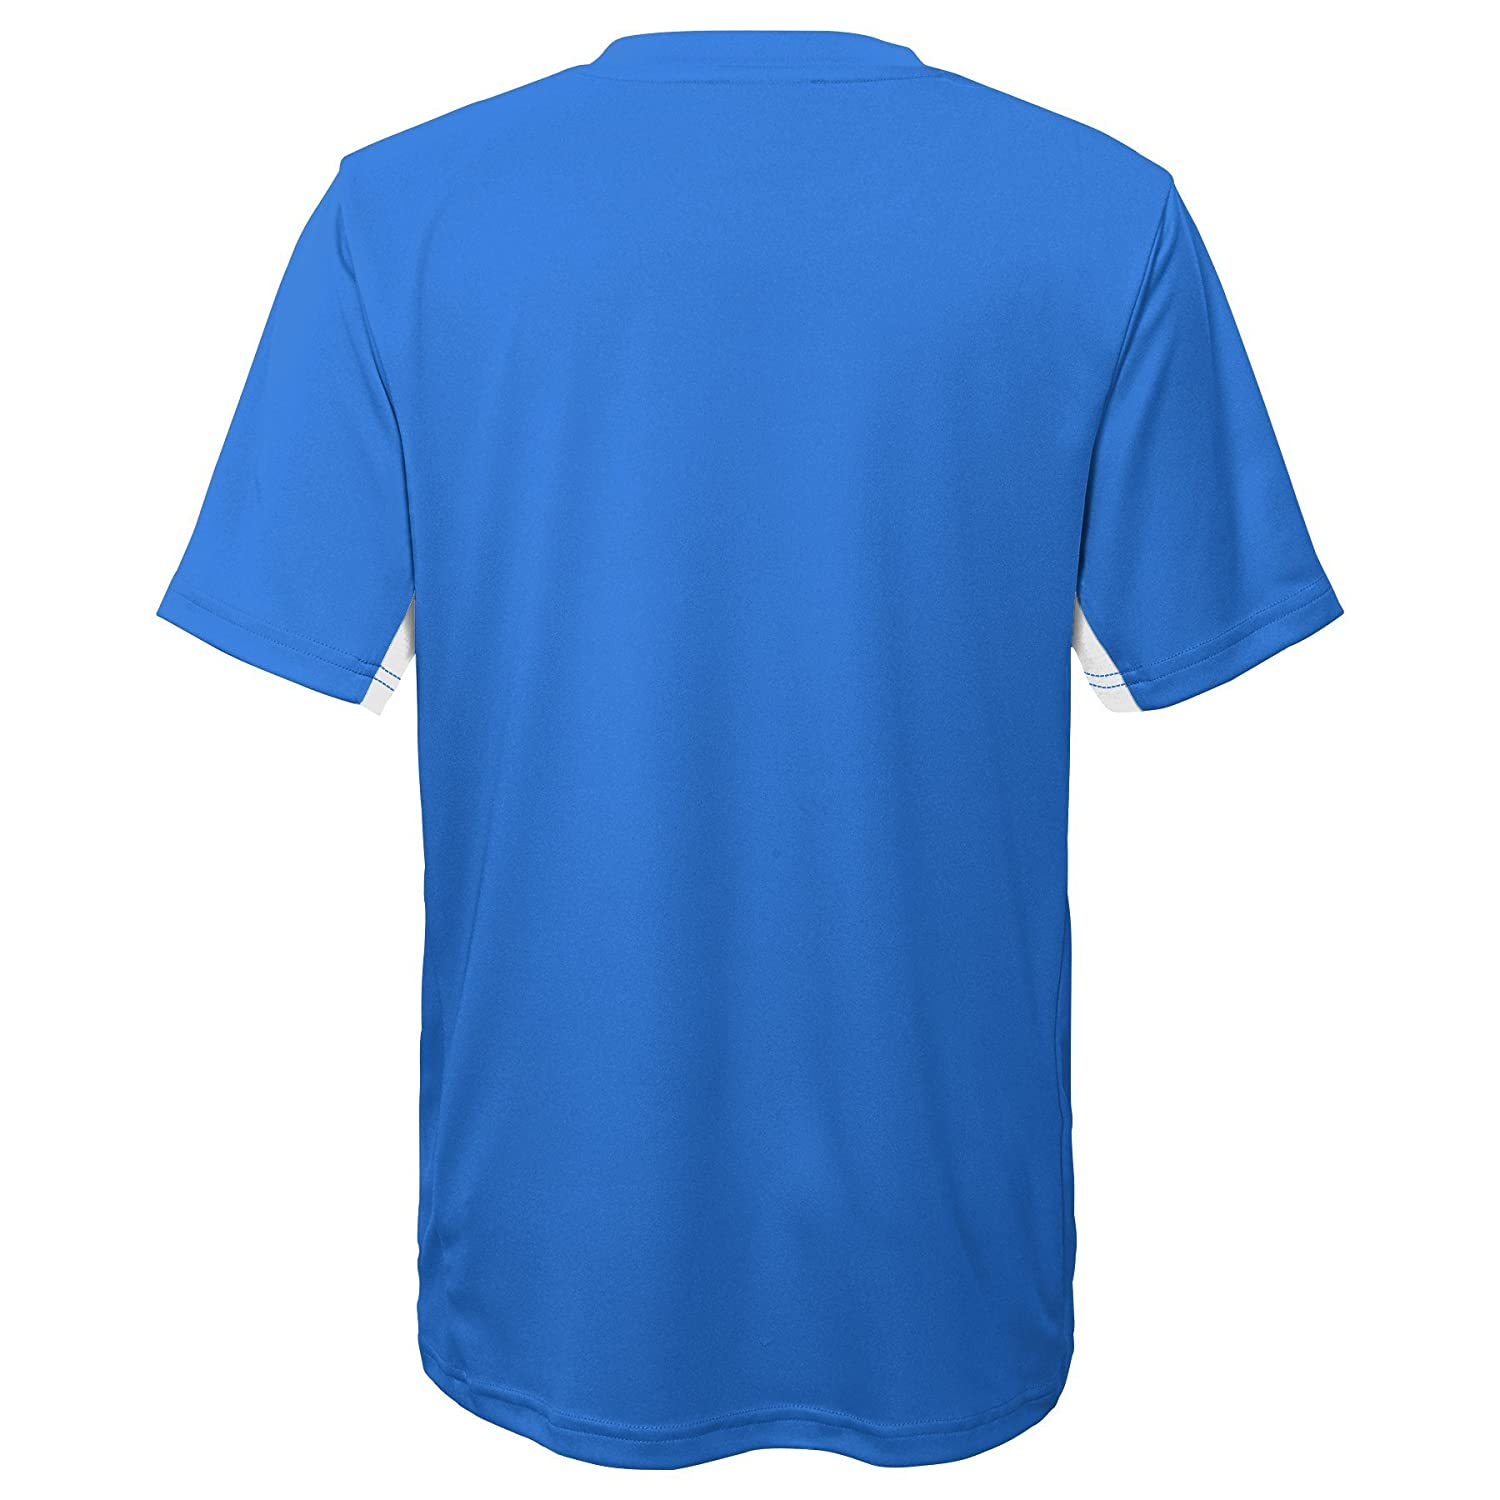 NCAA by Outerstuff NCAA Ucla Bruins Youth Boys Mainframe: Short Sleeve Performance Top Youth X-Large Strong Blue 18